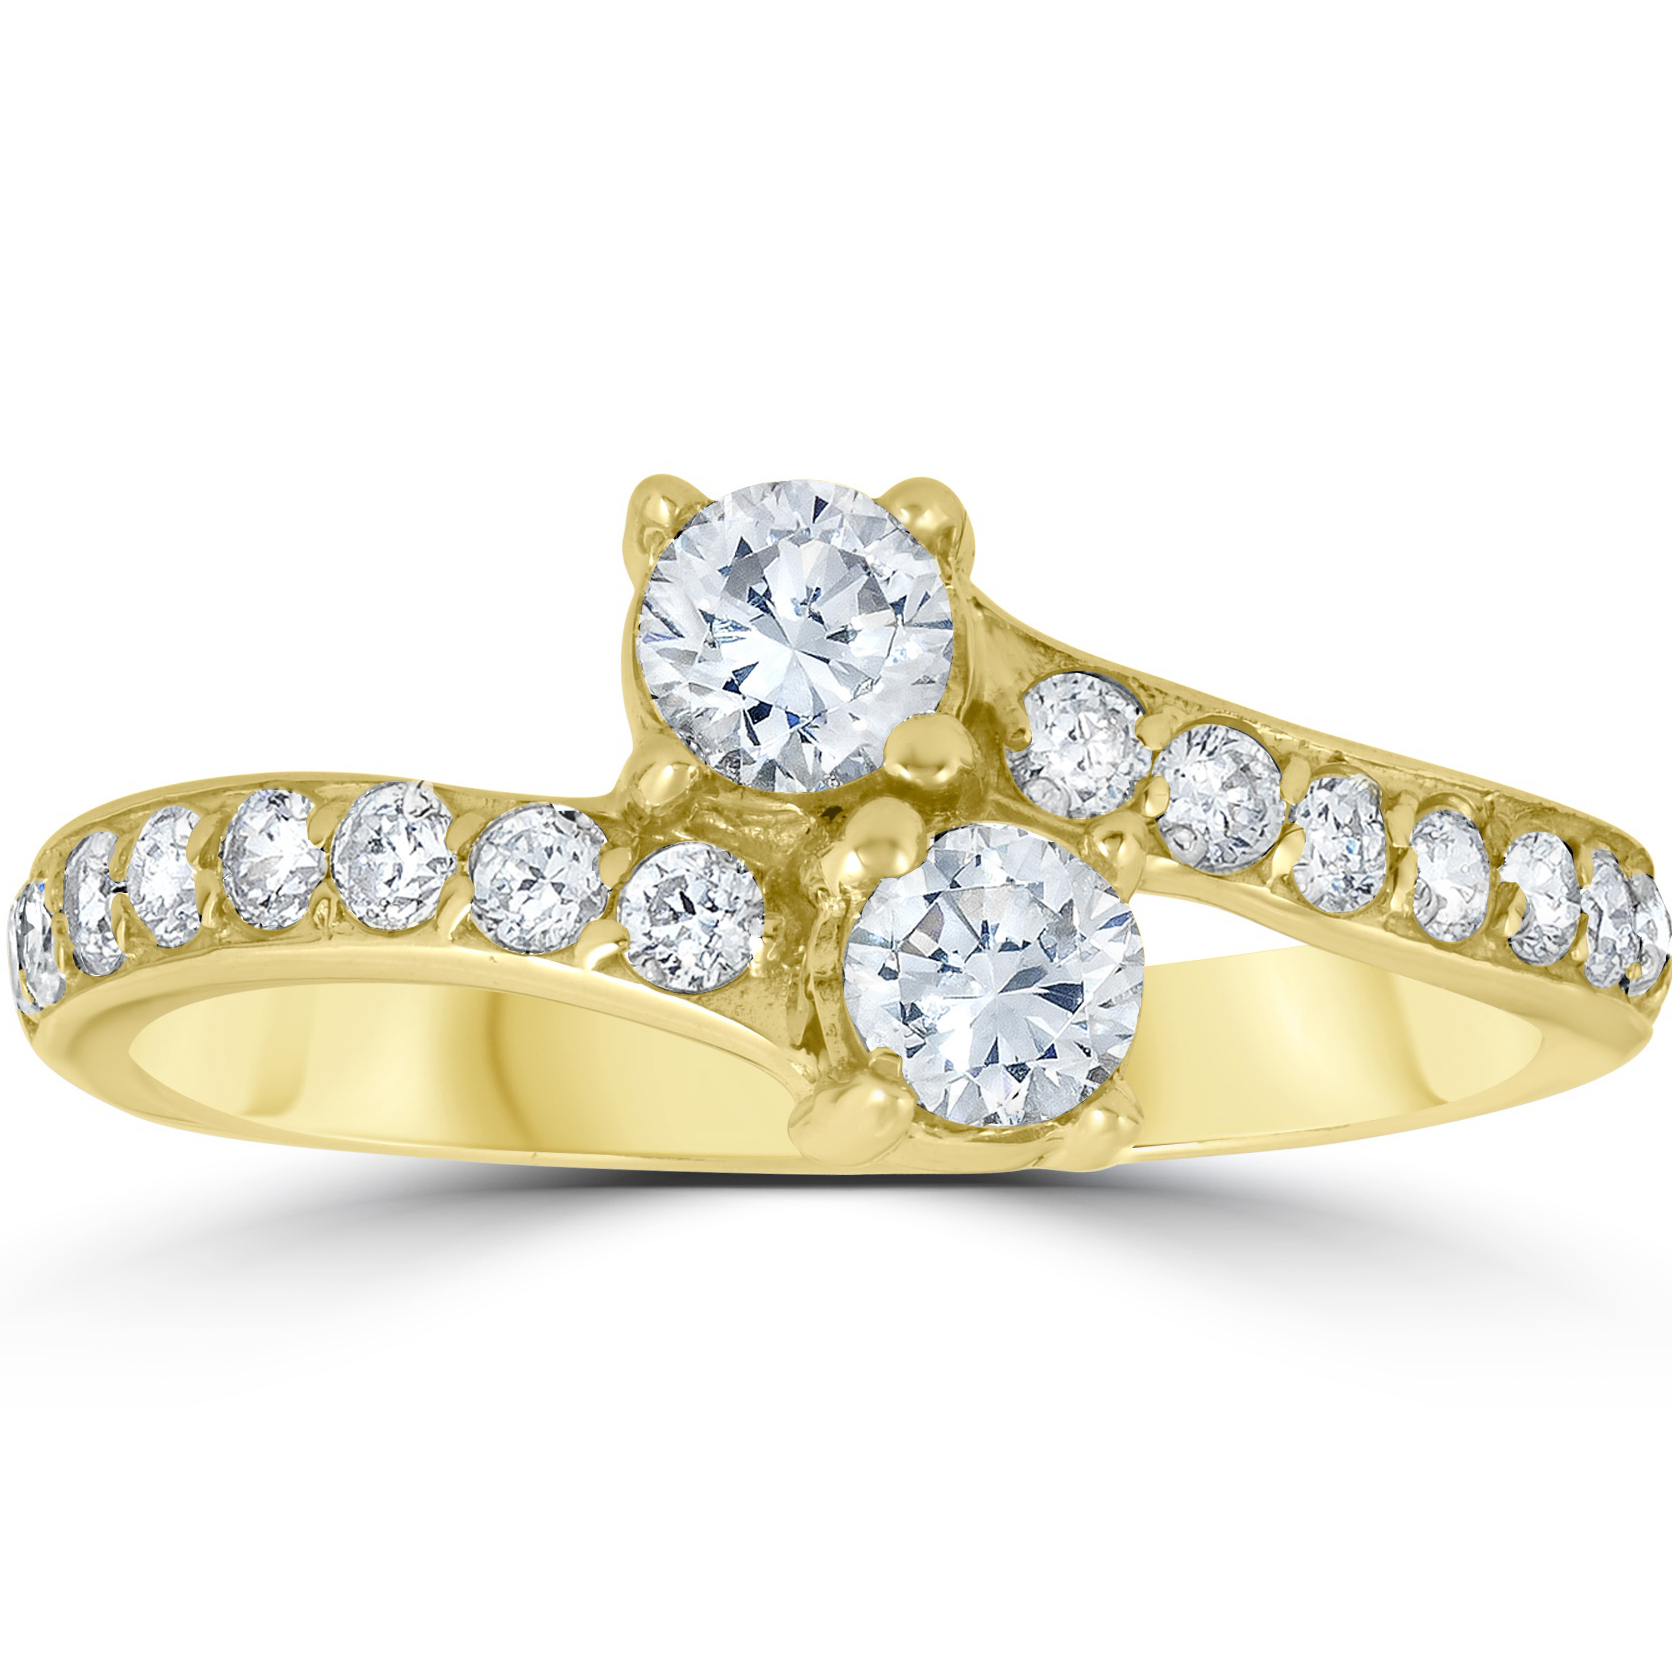 1 Carat Forever Us 2 Stone Diamond Ring 10K Yellow Gold by Pompeii3